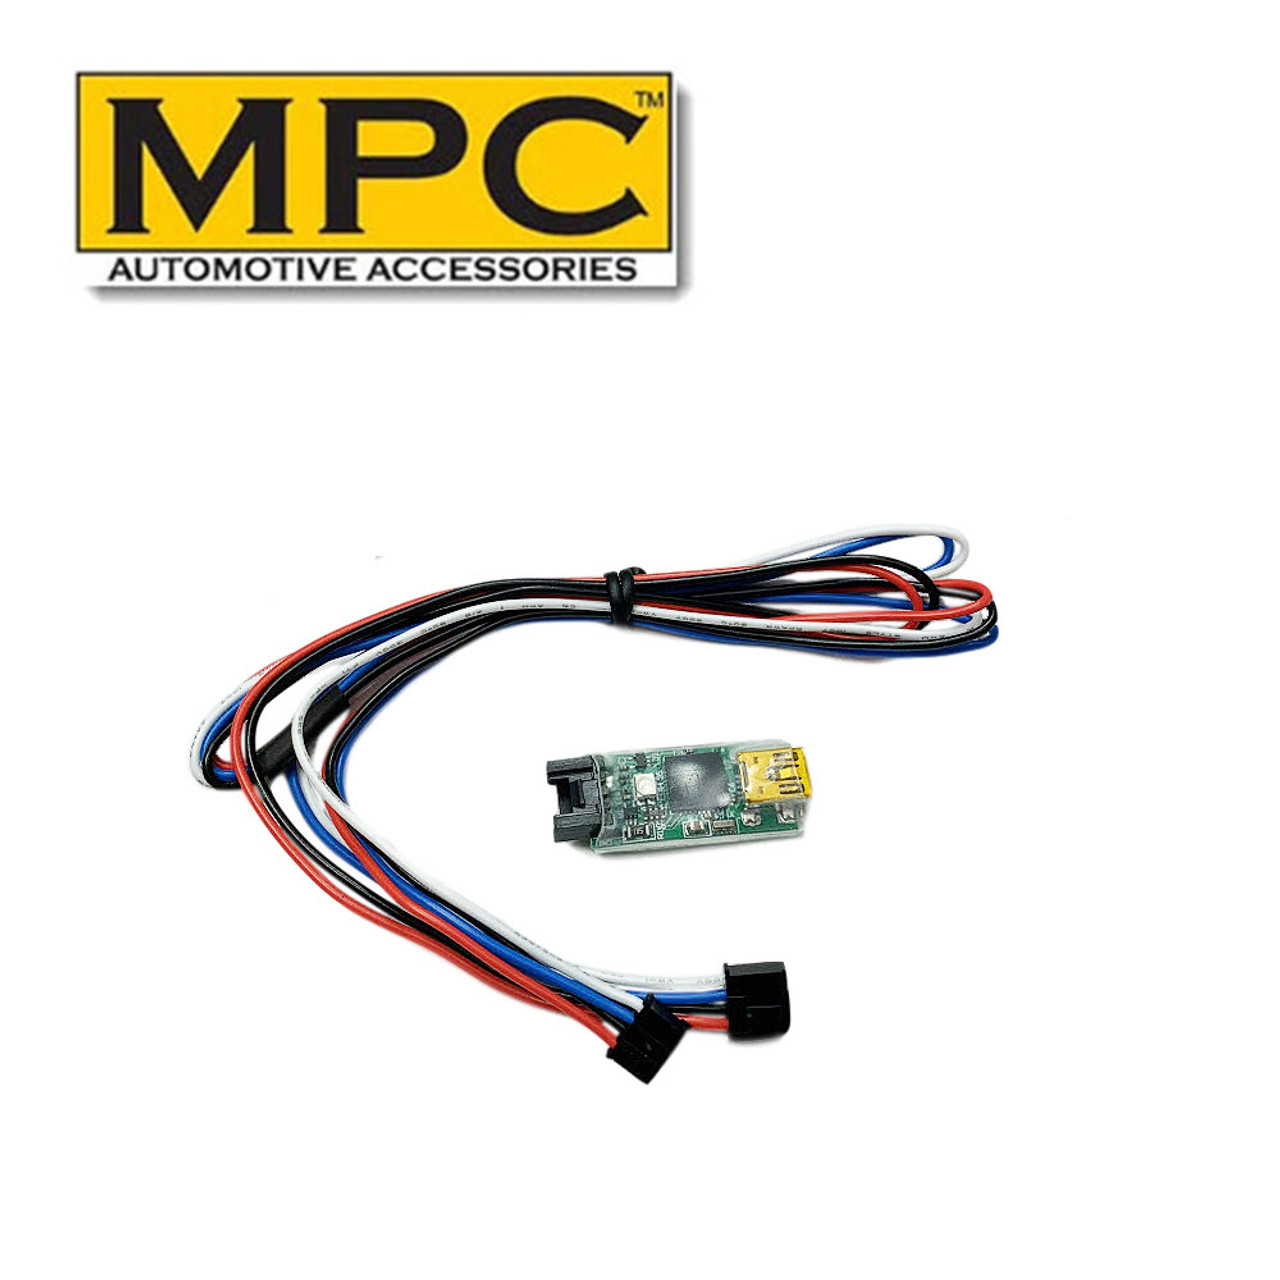 MPC Remote Starter For 2005-2007 Nissan Titan Gas - Key-to-Start - T-Harness